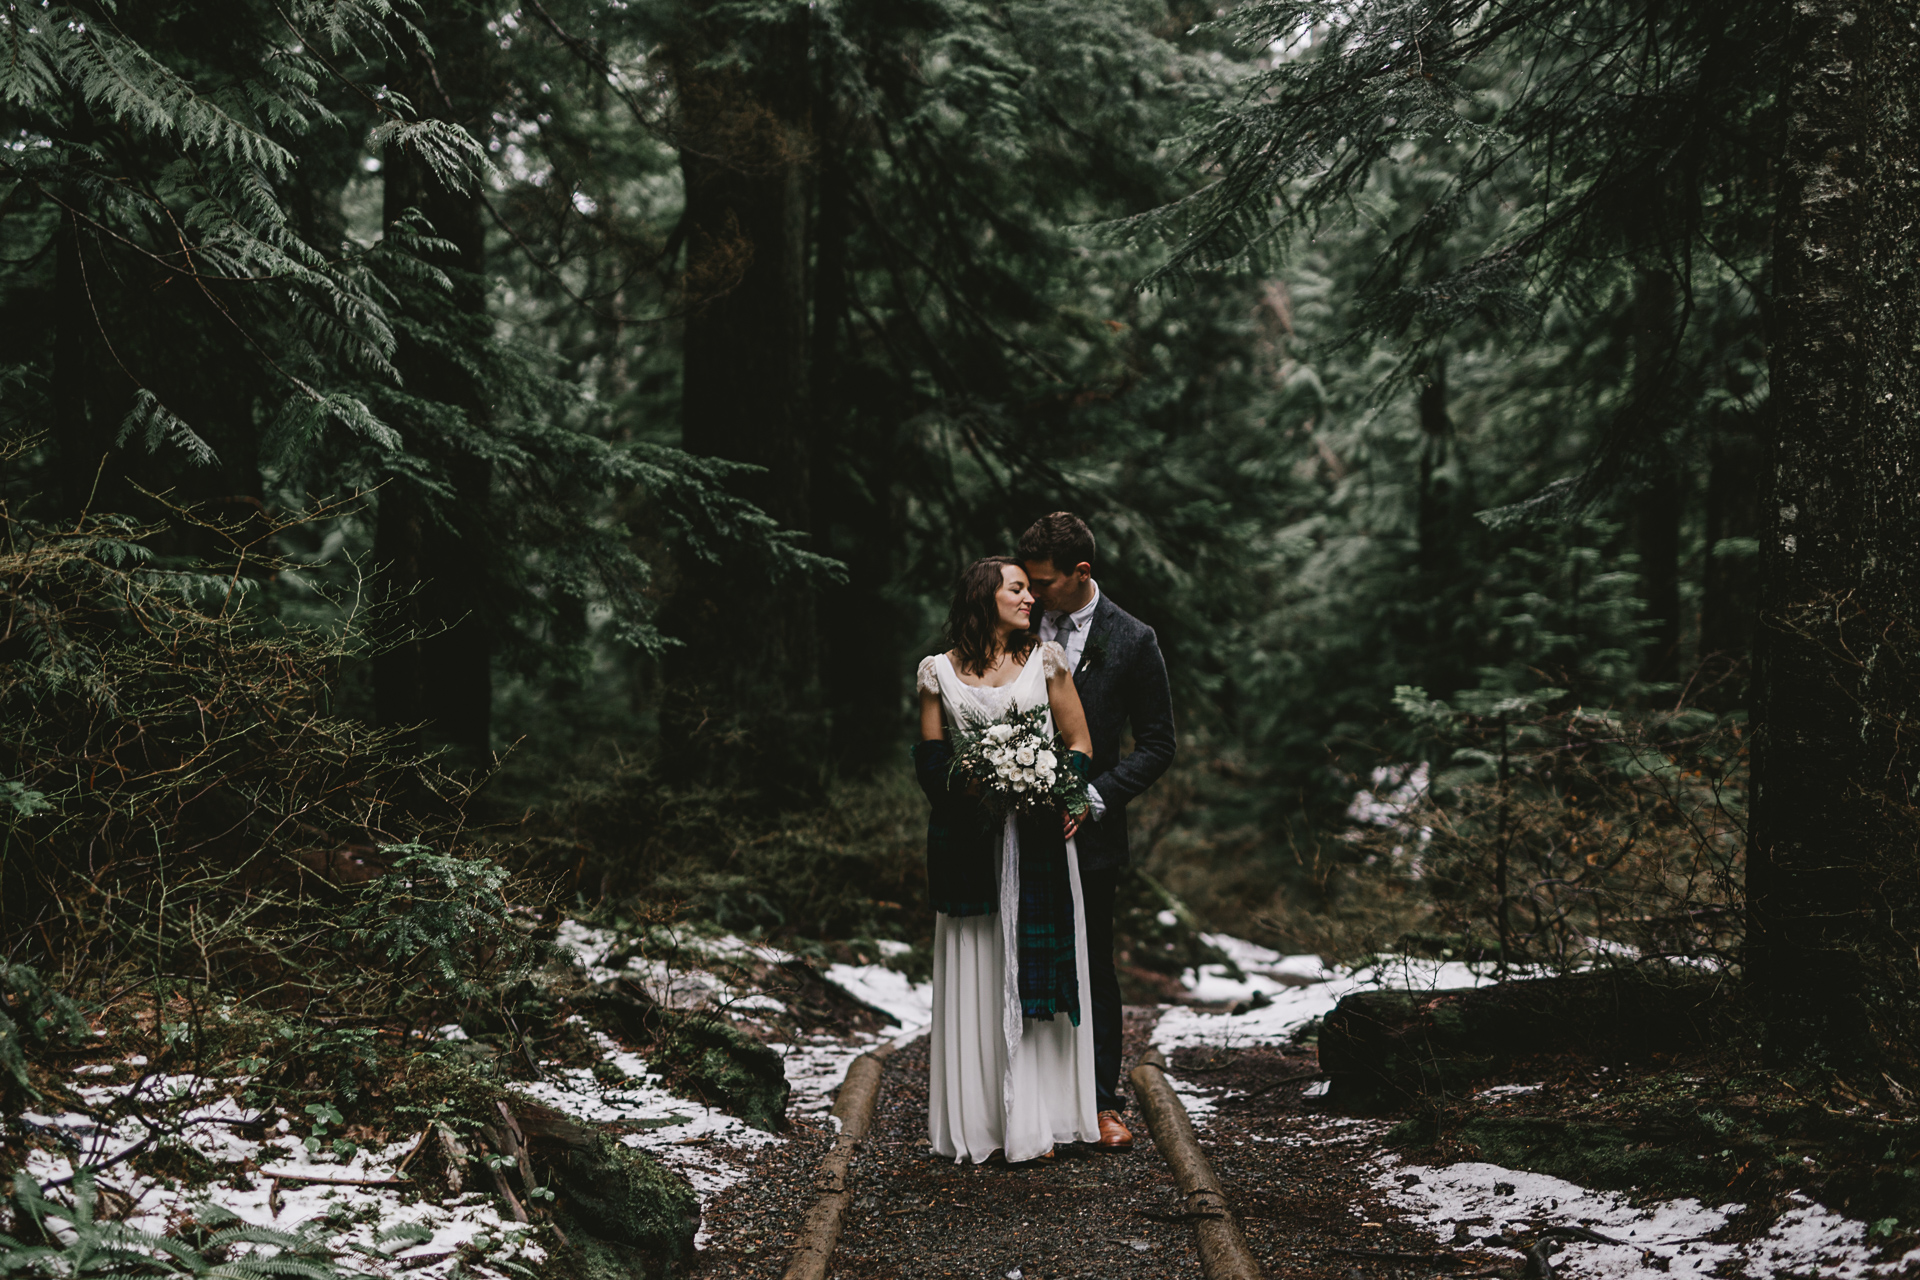 Intimate forest elopement in Seattle, photography by Jess Hunter, pacific northwest wedding, Snoqualmie Pass waterfall elopement, bohemian wedding in Portland, artistic wedding photography